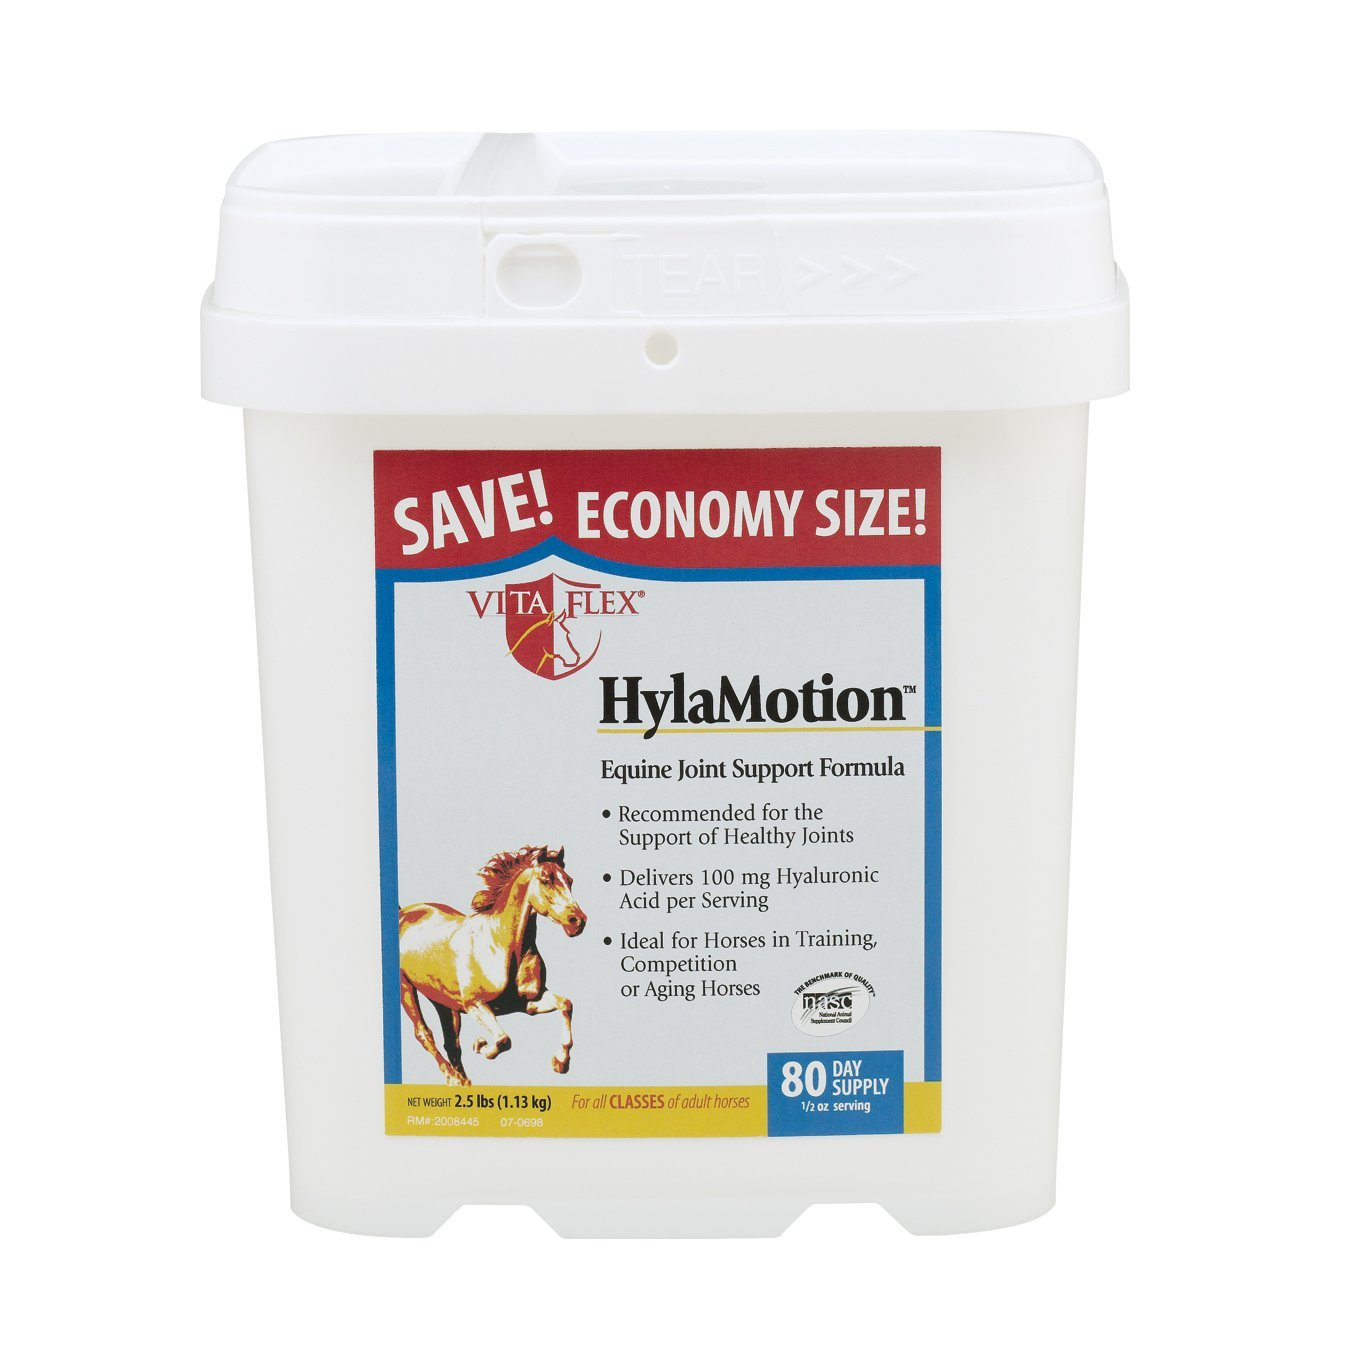 HylaMotion, Easy-to-give, palatable alfalfa-based powder delivers 100 mg HA per serving By Vita Flex